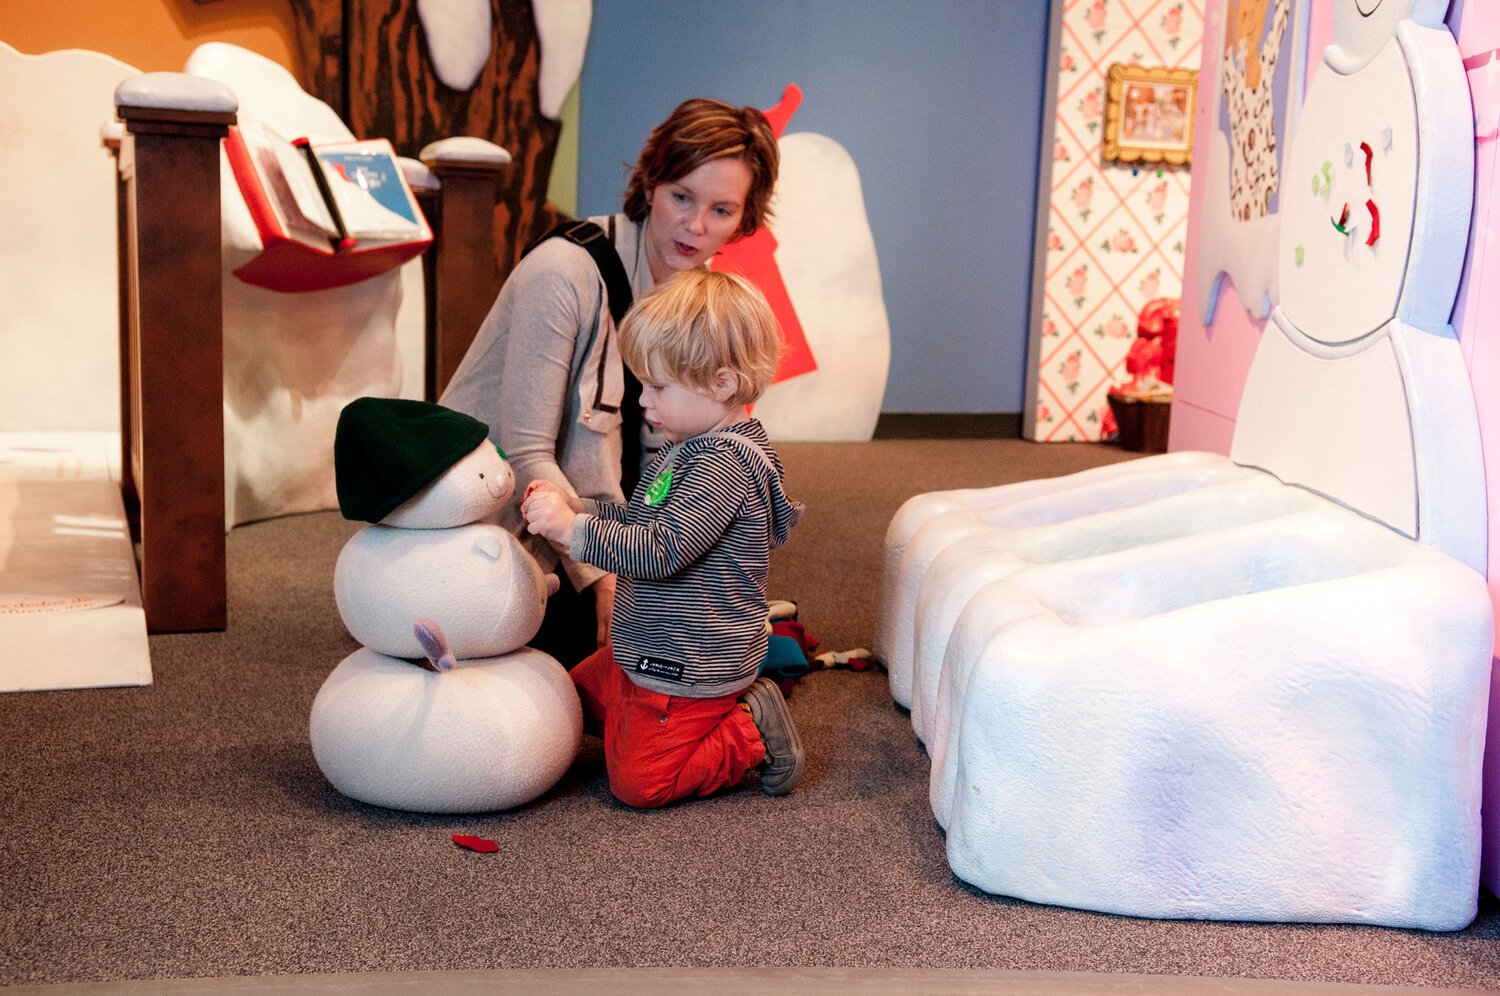 Image of child playing courtesy of the Minnesota Children's Museum.